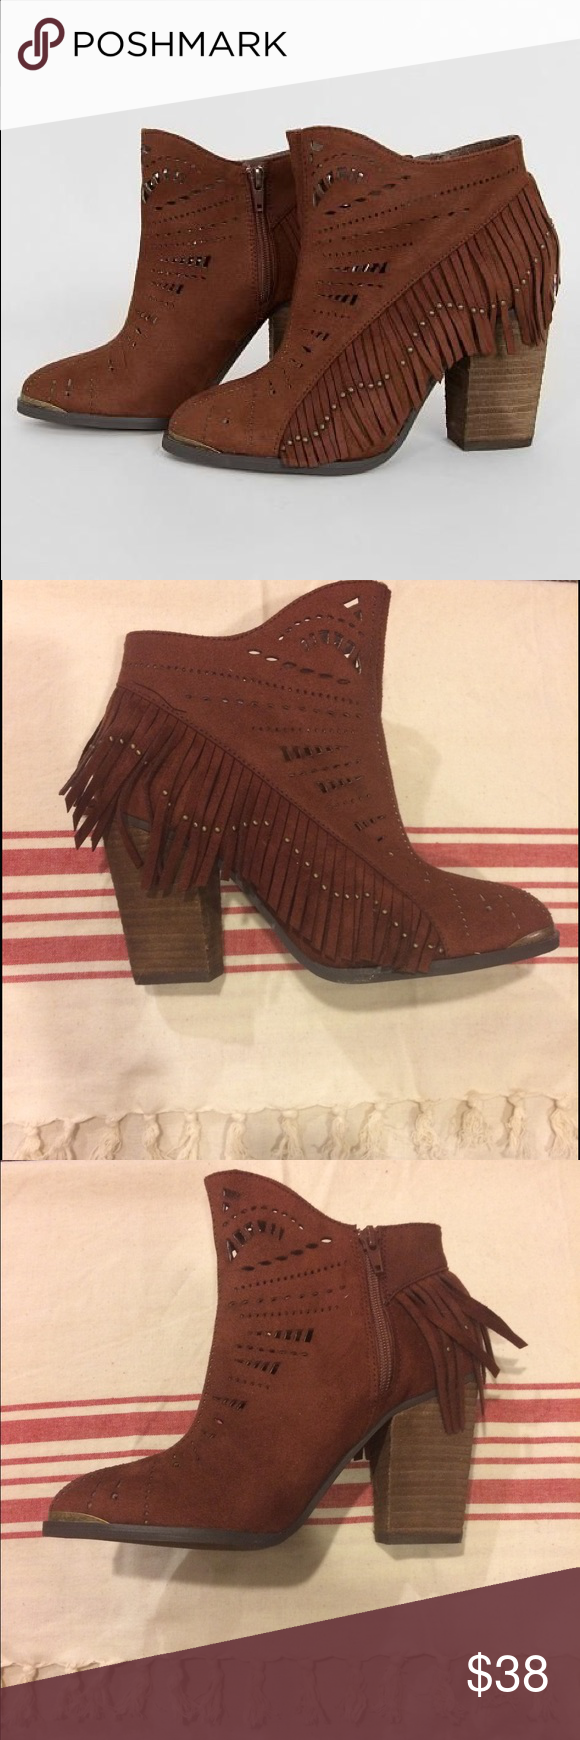 Not Rated Fierce Fringe rust western heeled bootie Serious boho chic vibe- very free people feel with these beautiful never worn boots. They are really fun faux suede rust, or red - brown, color with block heel for added comfort. Perforated later cut design with brass colored metal accents on fringe pieces and around pointed toe. Not Rated is a None West owned brand and quality-made. You'll love them! Wear them to a festival or out to brunch. Not Rated Shoes Ankle Boots & Booties